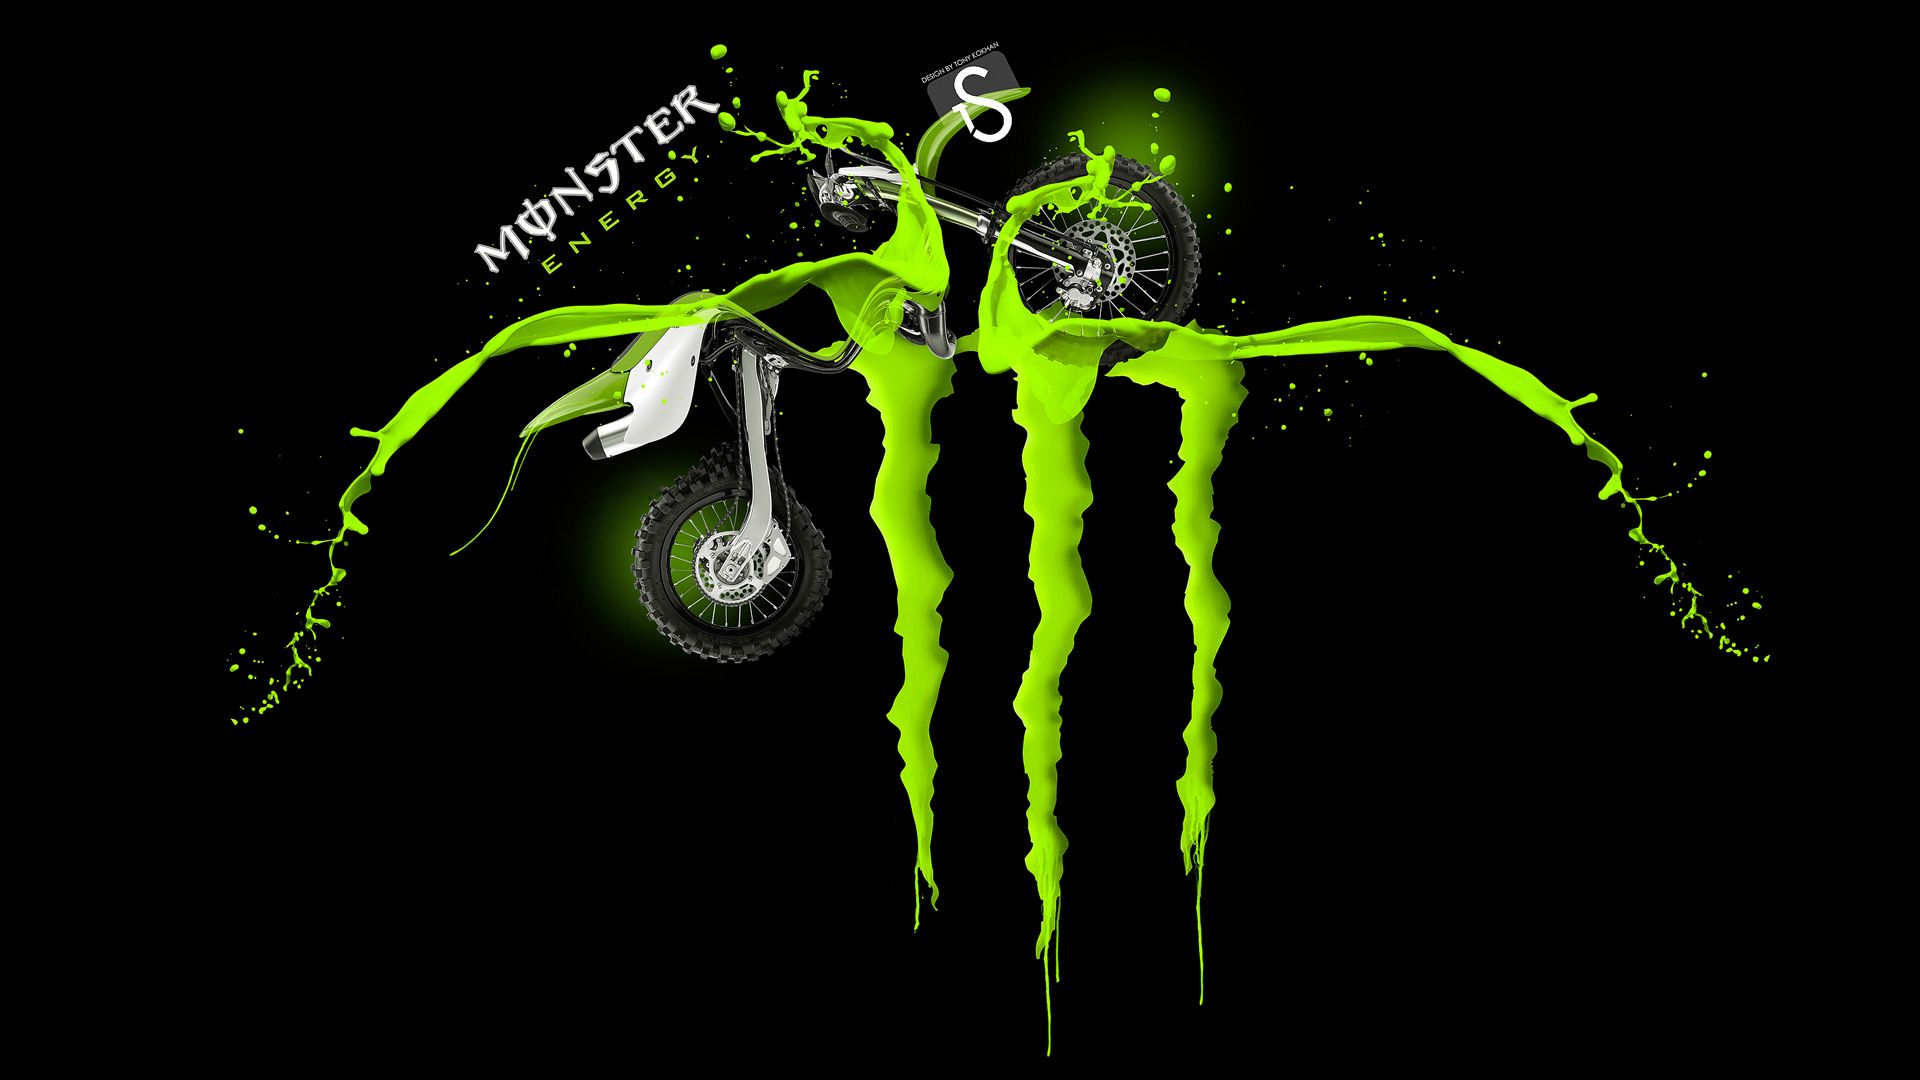 Hd Monster Wallpapers Hd Monster Wallpapers Download Free Monster